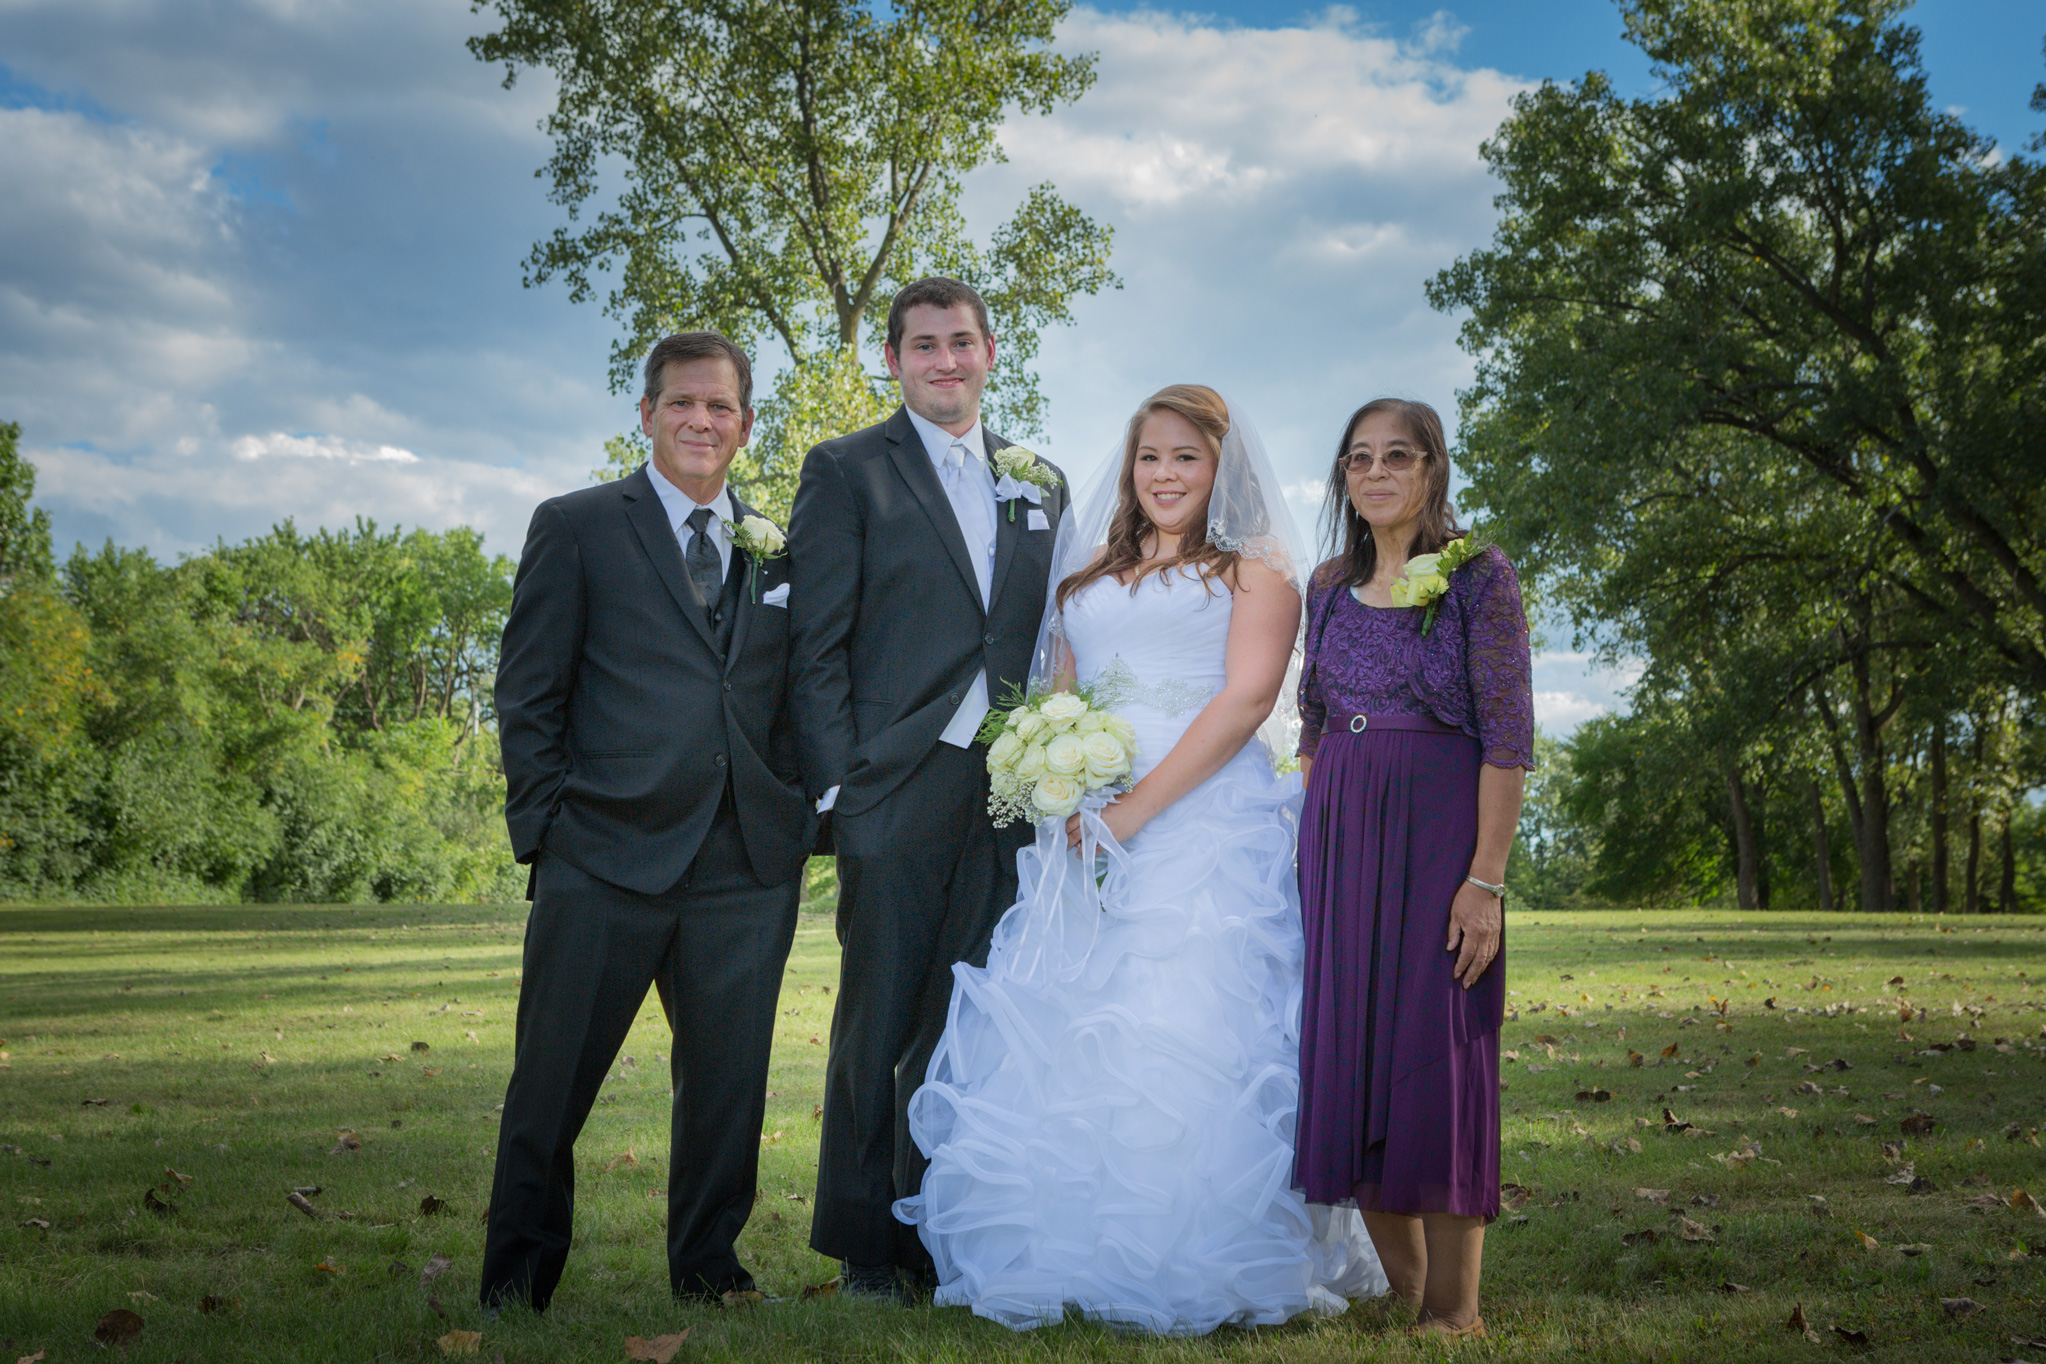 bride_groom_family_photography_1.jpg